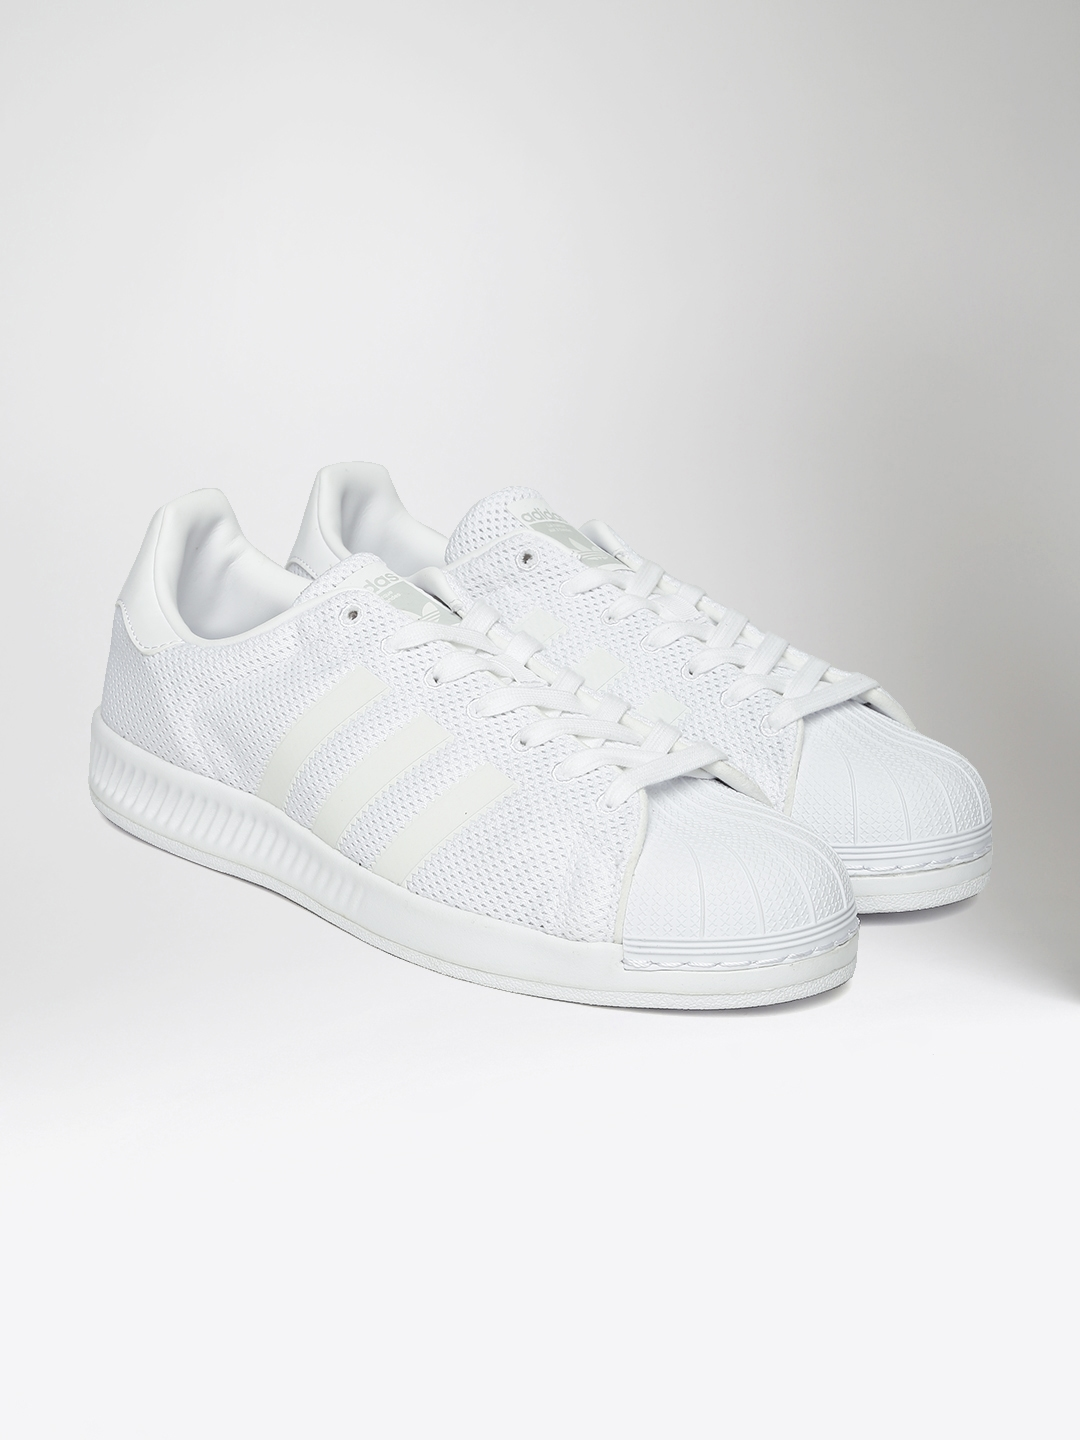 d6b3ac945c05f Buy ADIDAS Originals Men White SUPERSTAR BOUNCE Sneakers - Casual ...